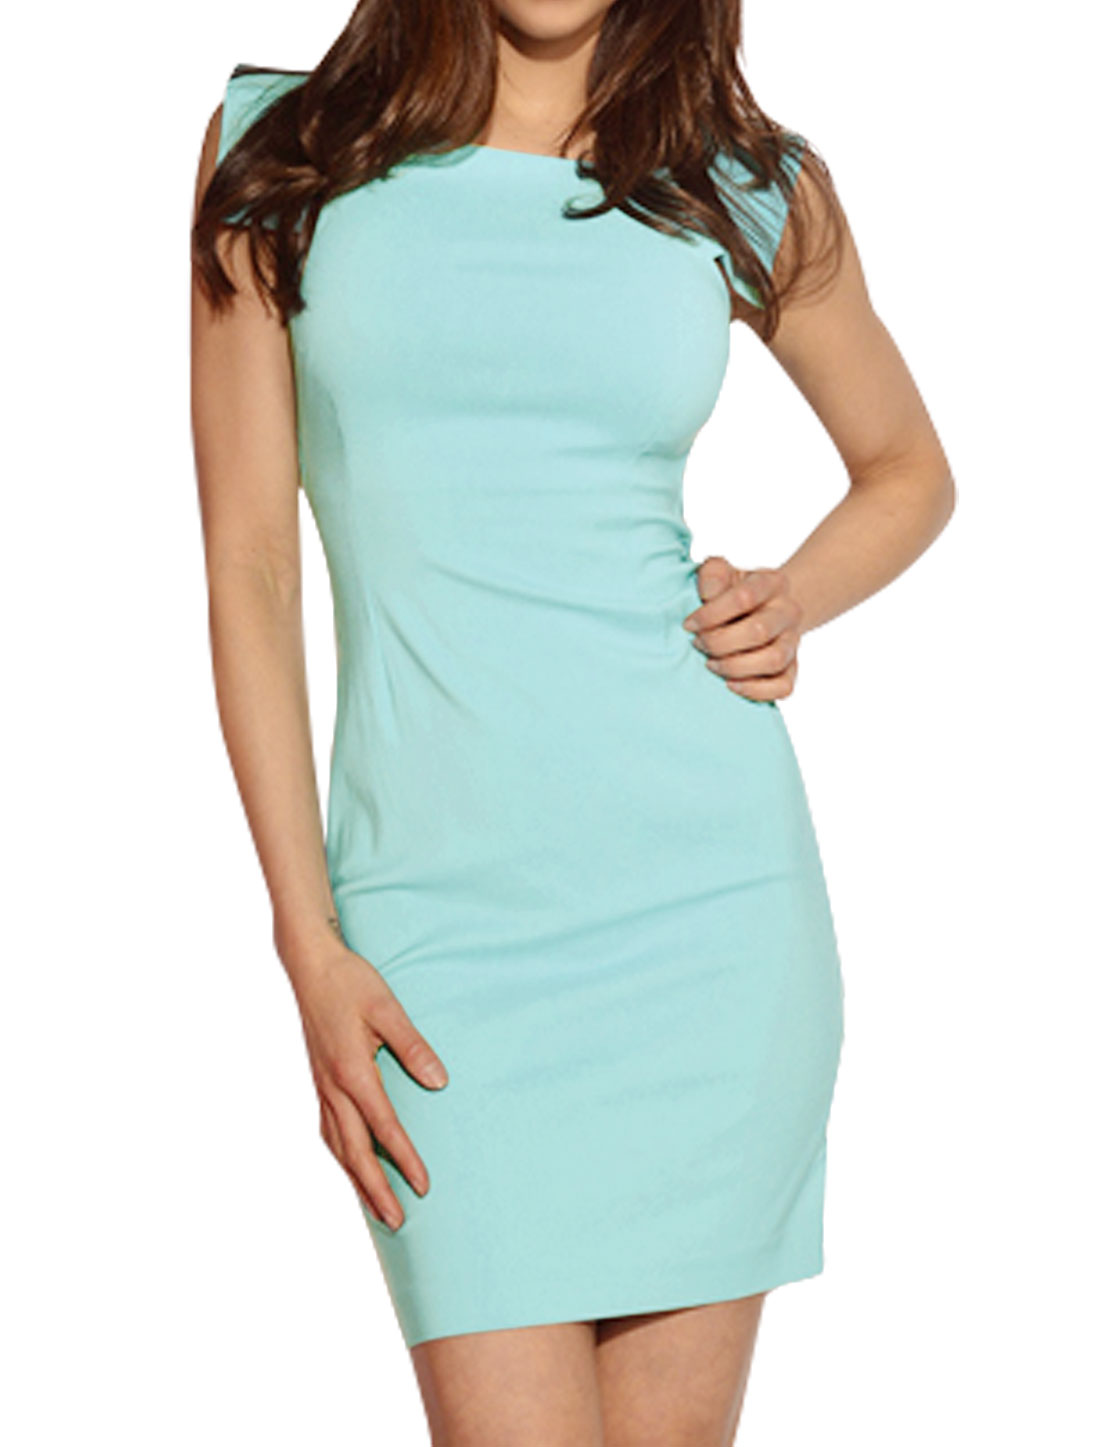 Women Square Neck Sleeveless Above Knee Pencil Dress Blue S